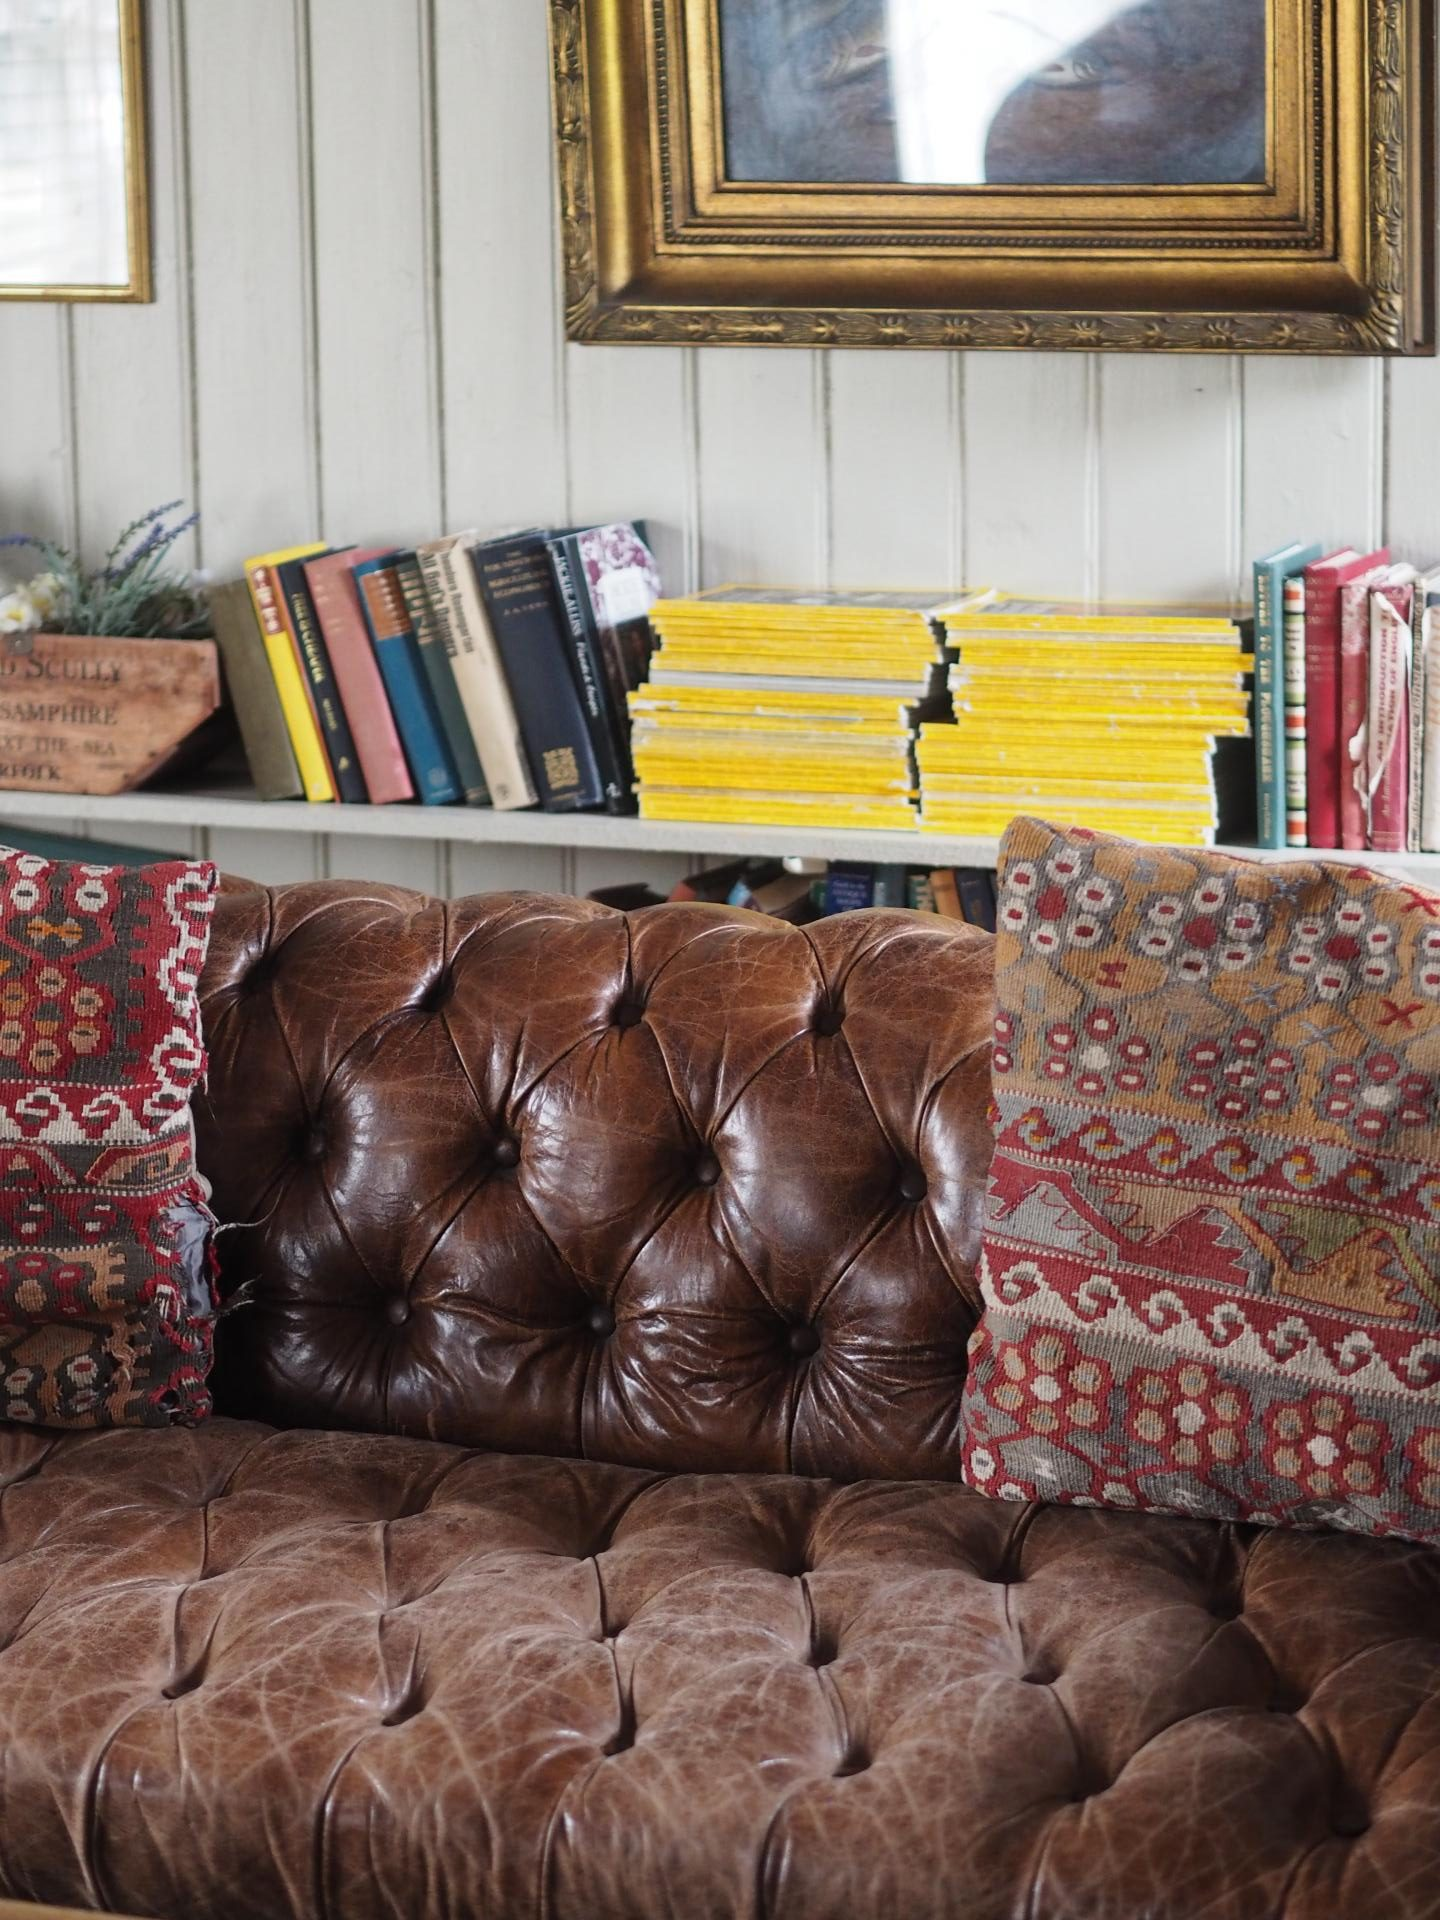 Osea Island - Sofa, Books